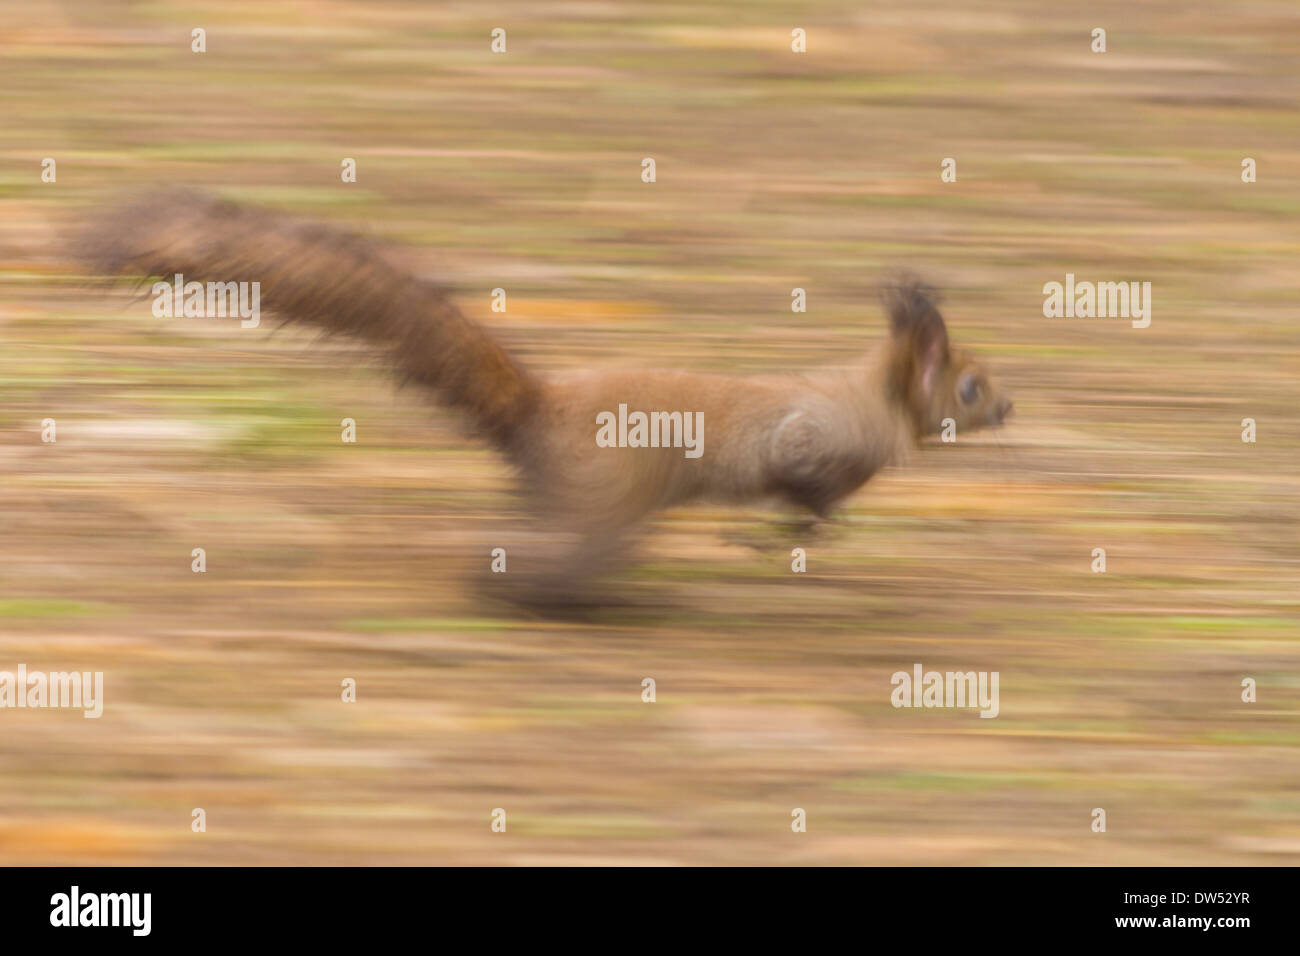 red-squirrel-sciurus-vulgaris-romania-DW